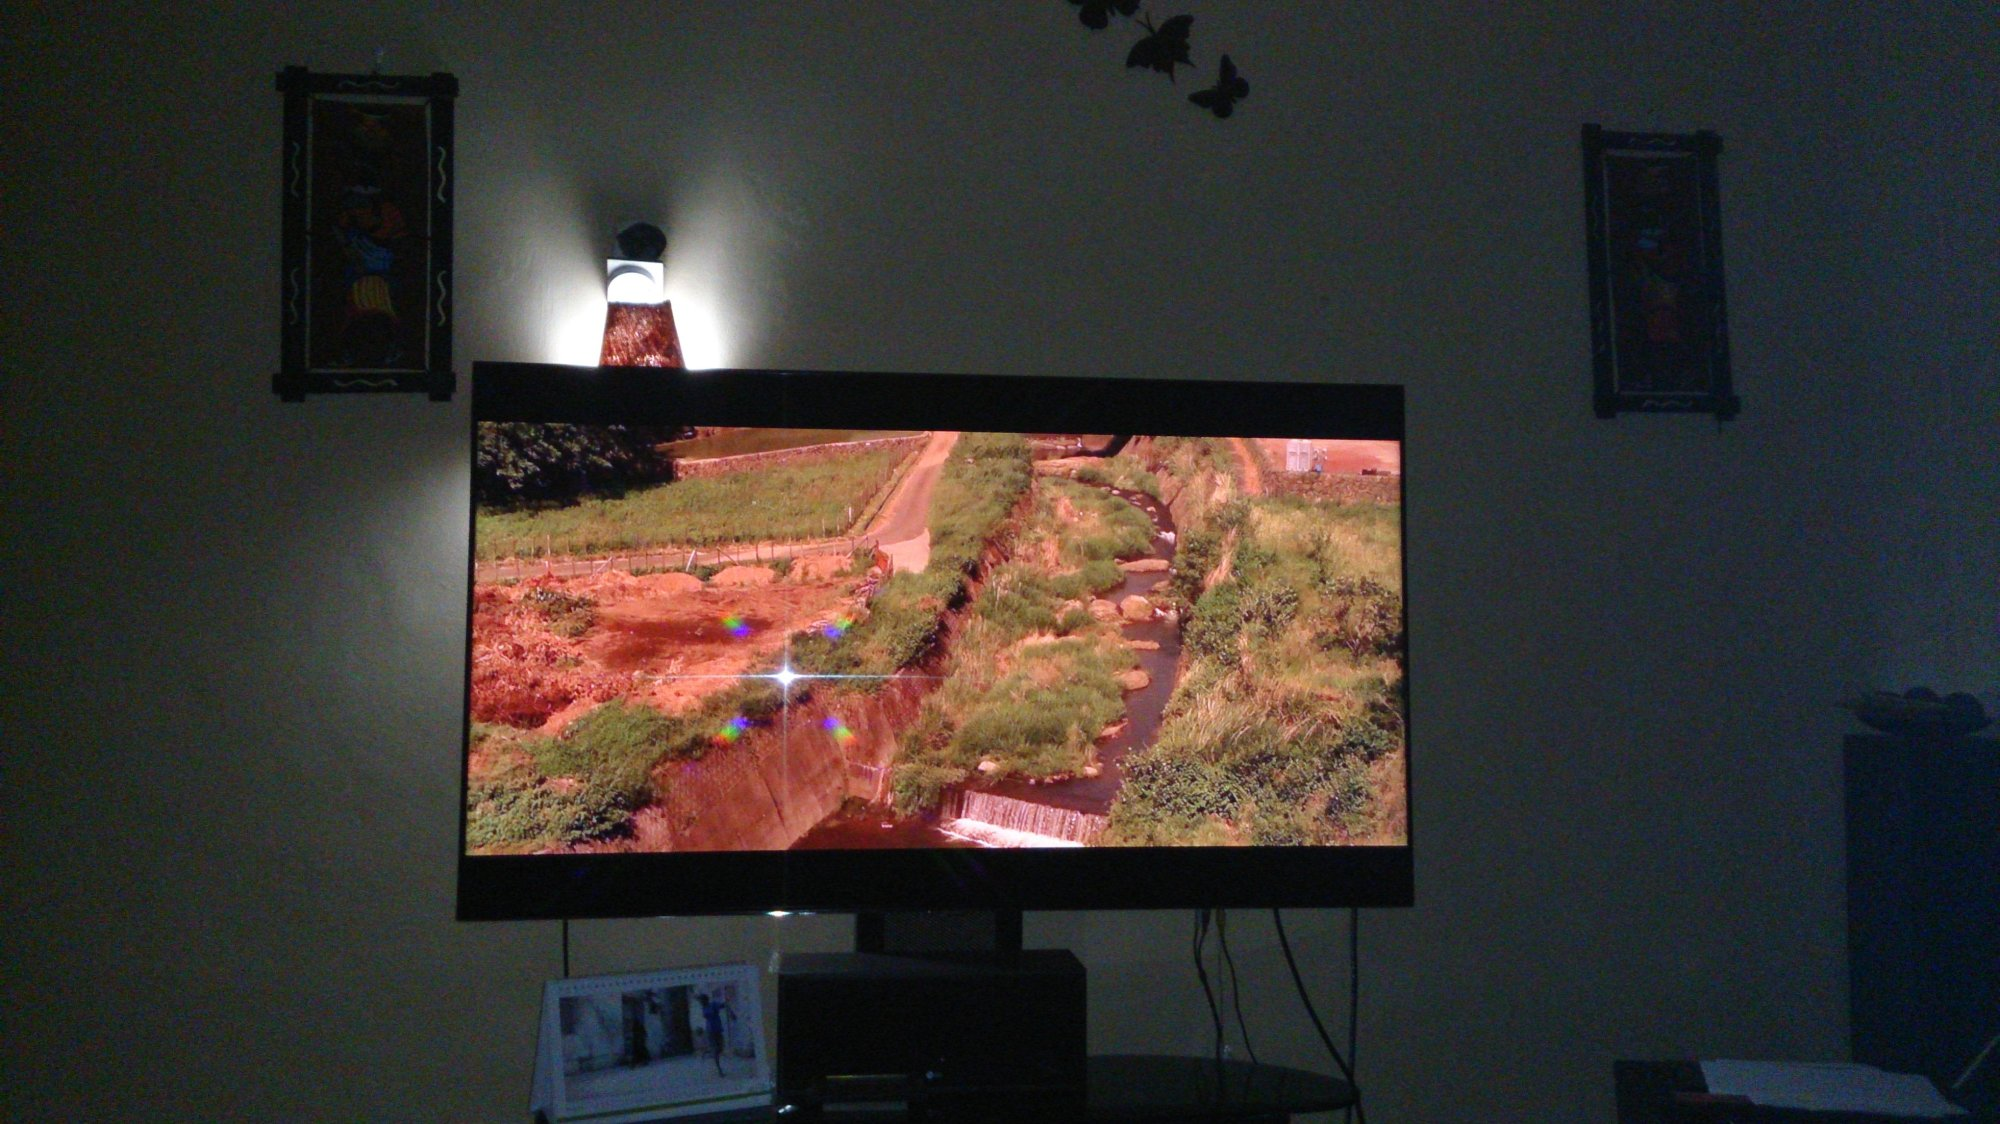 hight resolution of hey guys wanted to share some pics of 720p movie played using tweaked potplayer from laptop highly recommend this software for quality video